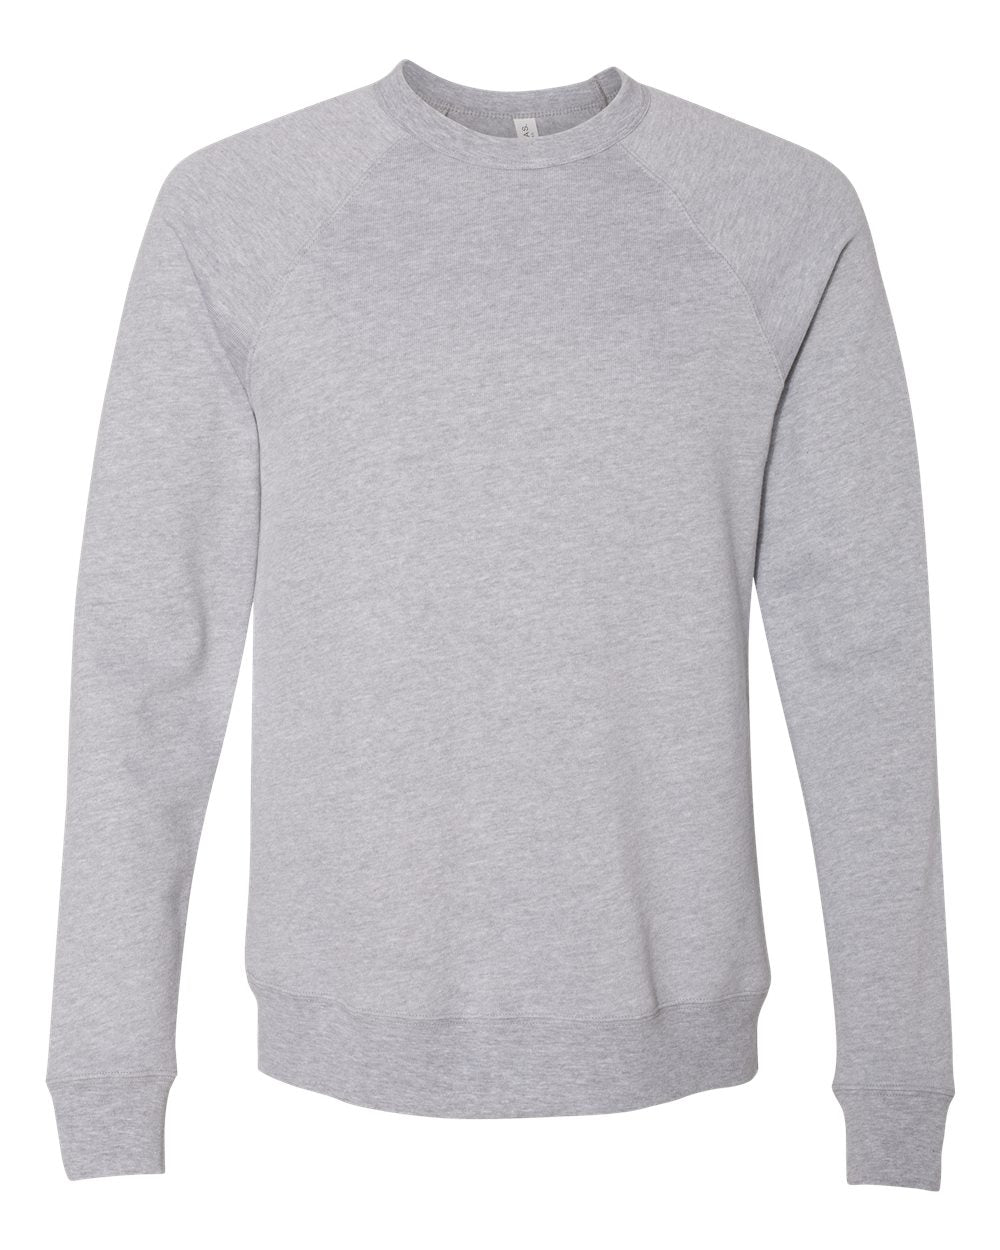 BELLA + CANVAS - Unisex Sponge Fleece Raglan Sweatshirt